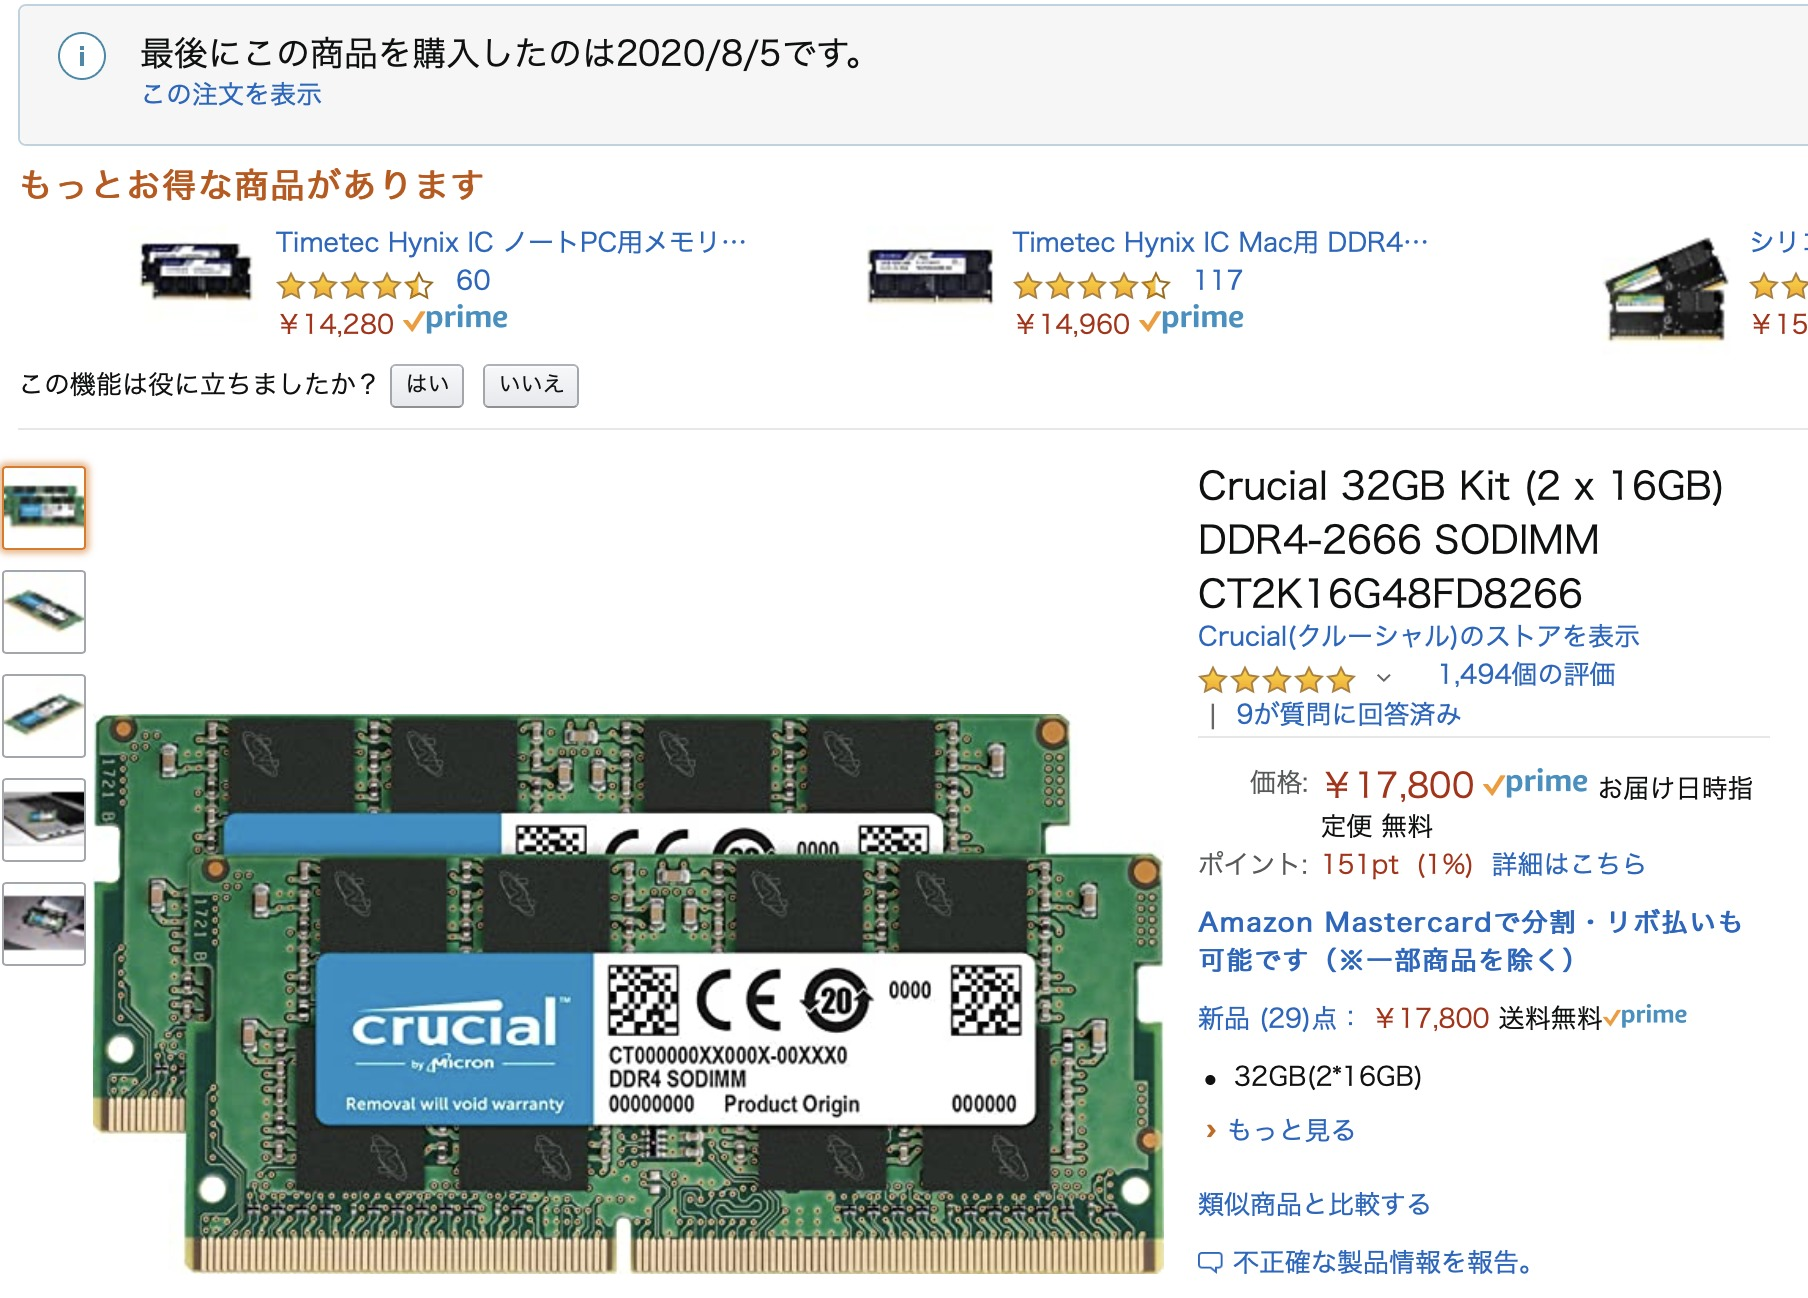 Amazon | Crucial 32GB Kit (2 x 16GB) DDR4-2666 SODIMM CT2K16G48FD8266 | Crucial(クルーシャル) | メモリ 通販 2020-08-07 23-00-33